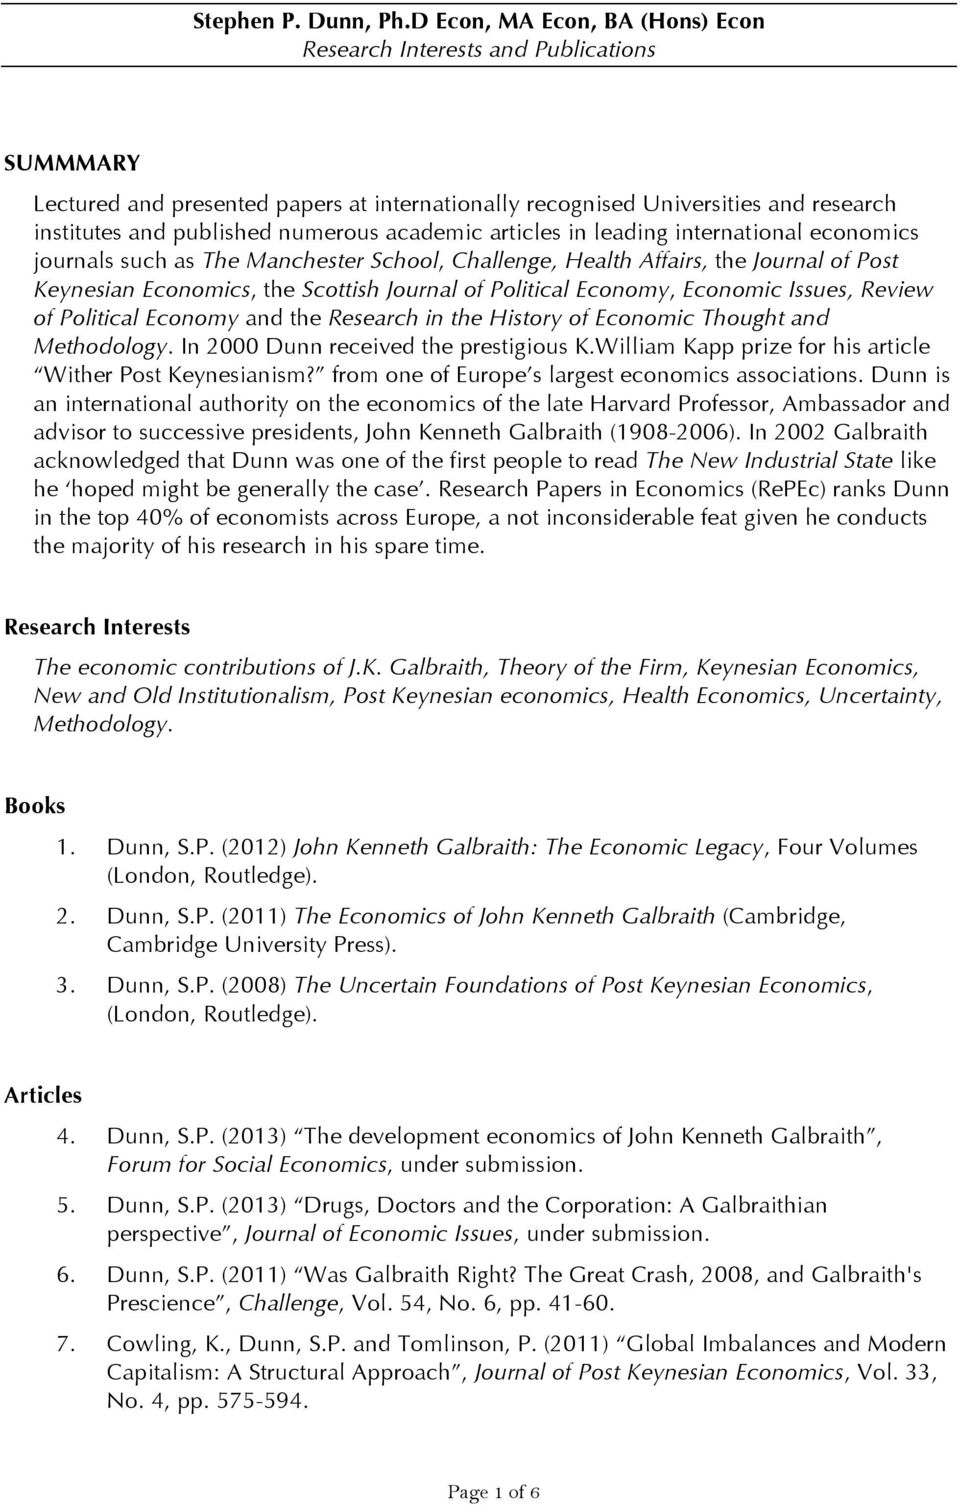 academic articles in leading international economics journals such as The Manchester School, Challenge, Health Affairs, the Journal of Post Keynesian Economics, the Scottish Journal of Political